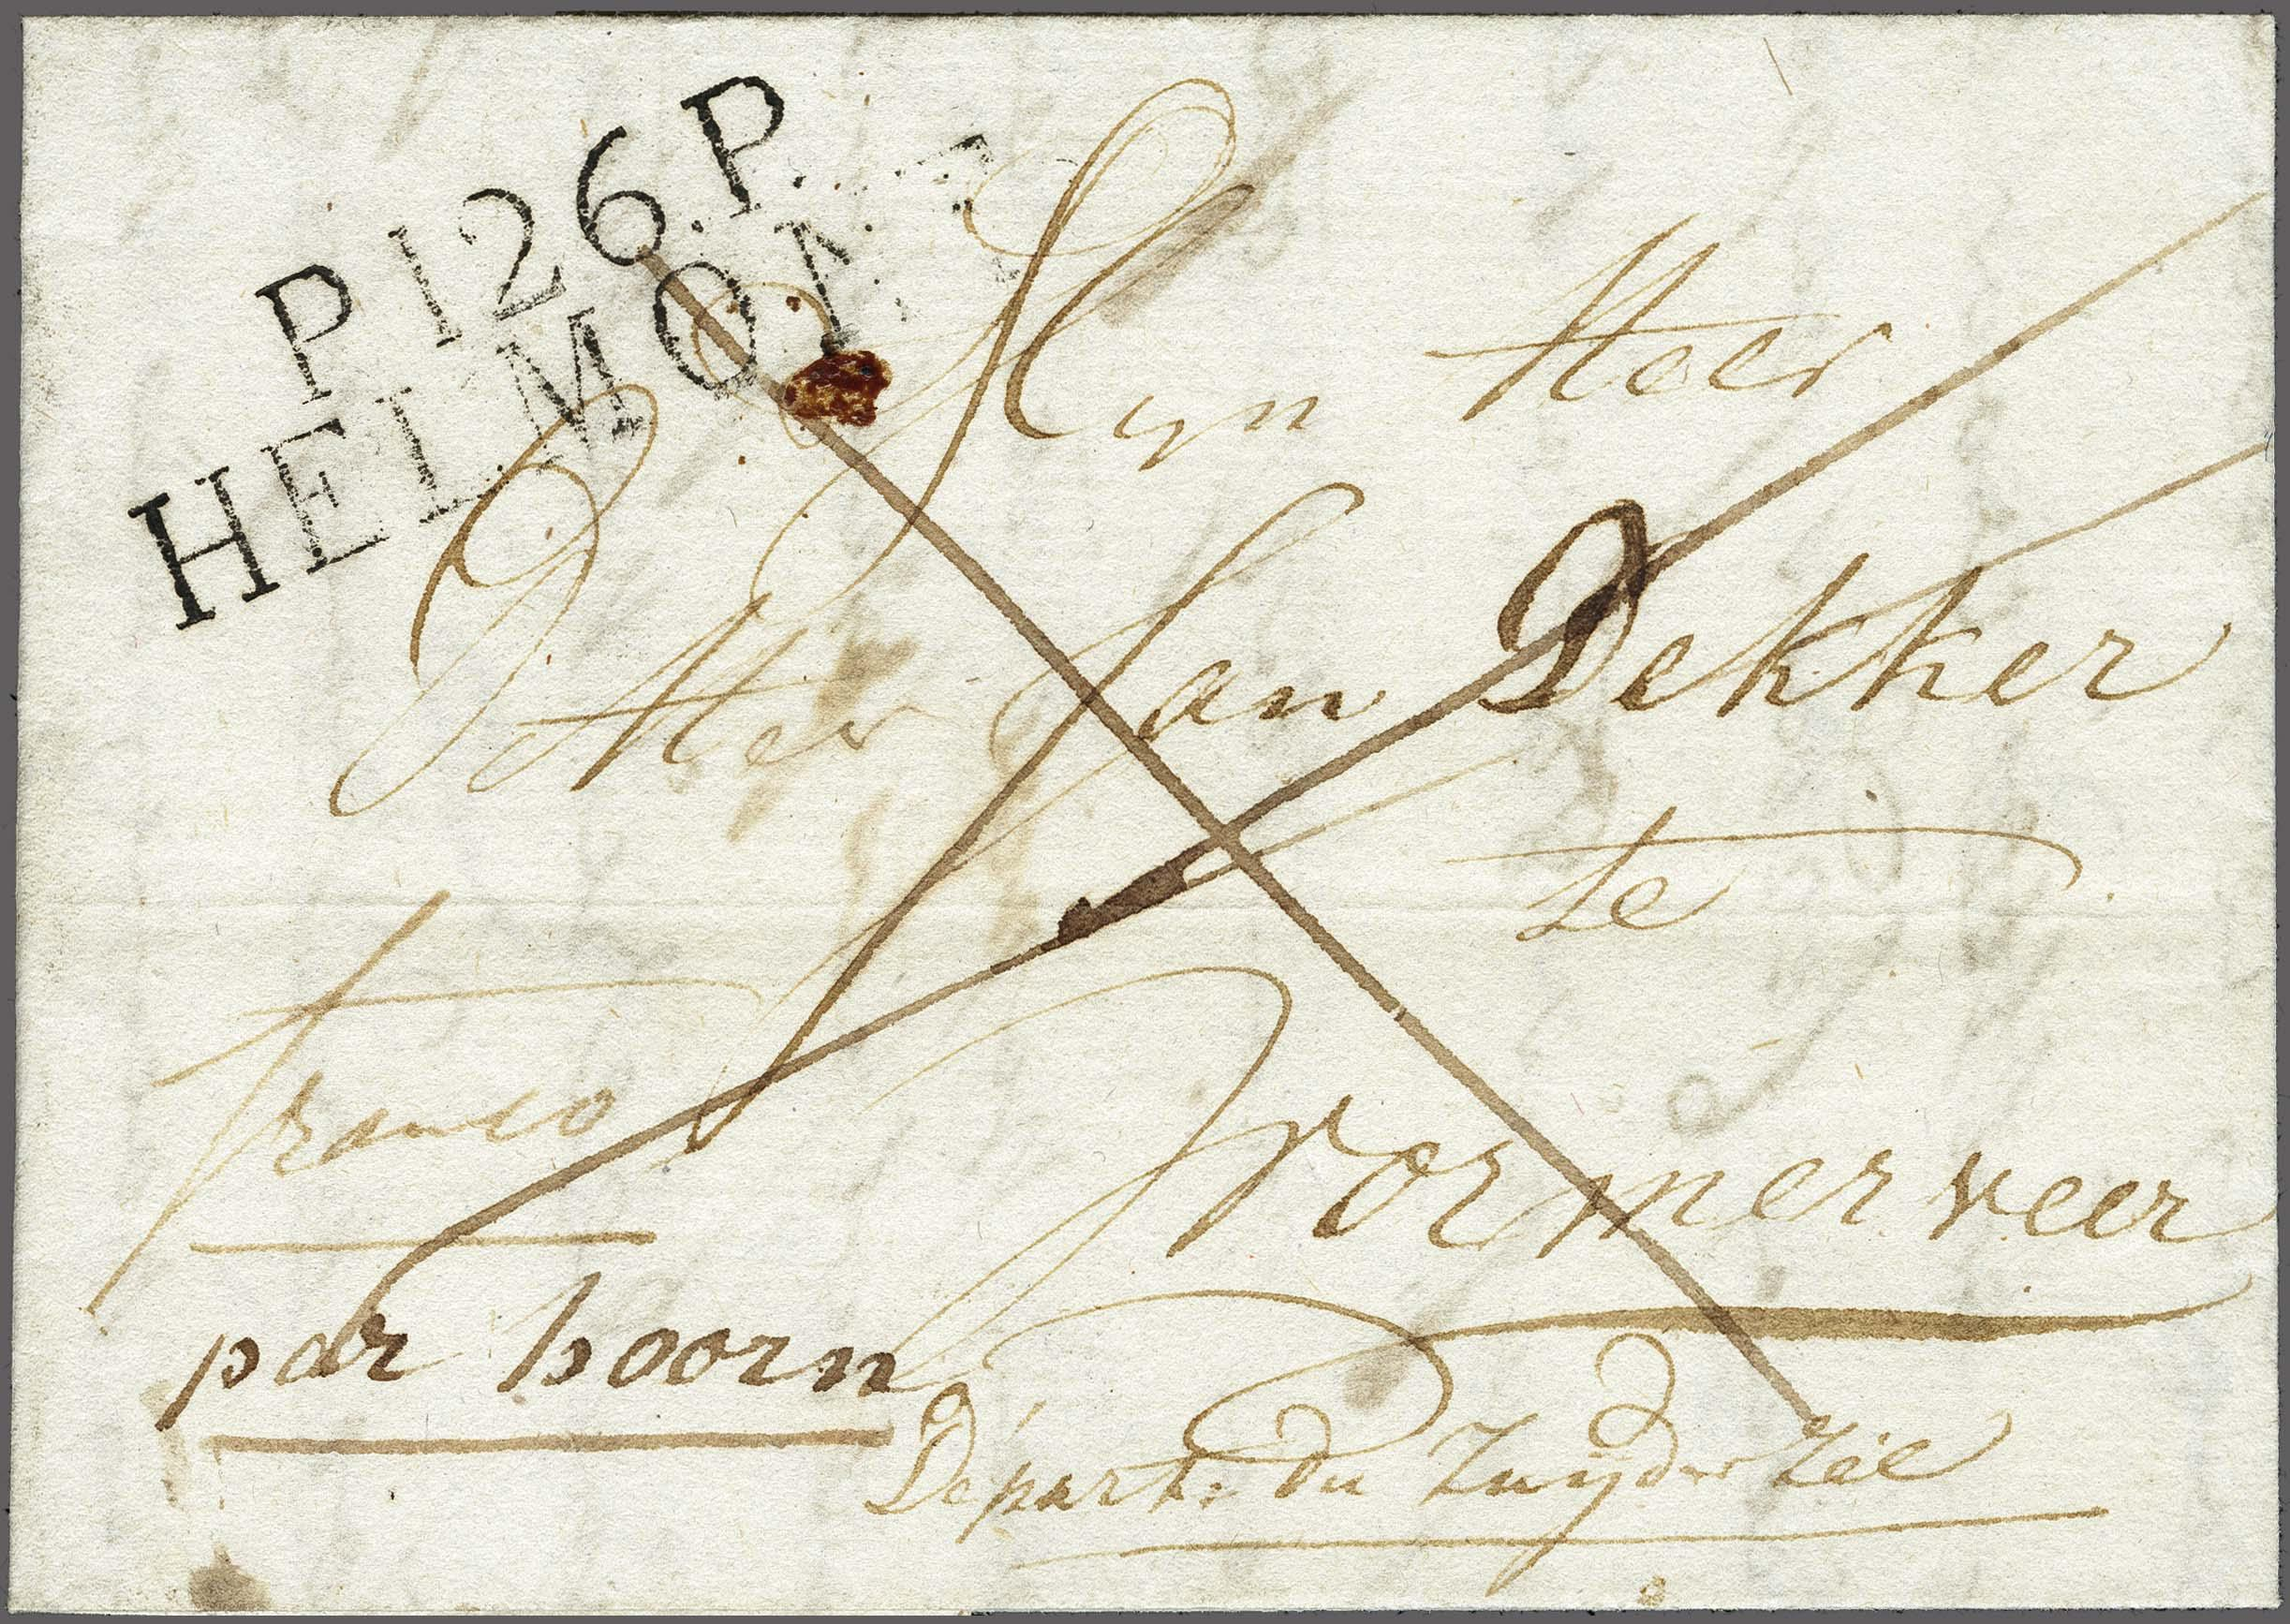 Lot 2372 - Netherlands and former colonies Netherlands -  Corinphila Veilingen Auction 250-253 - Day 3 - Netherlands and former colonies - Single lots & Picture postcards